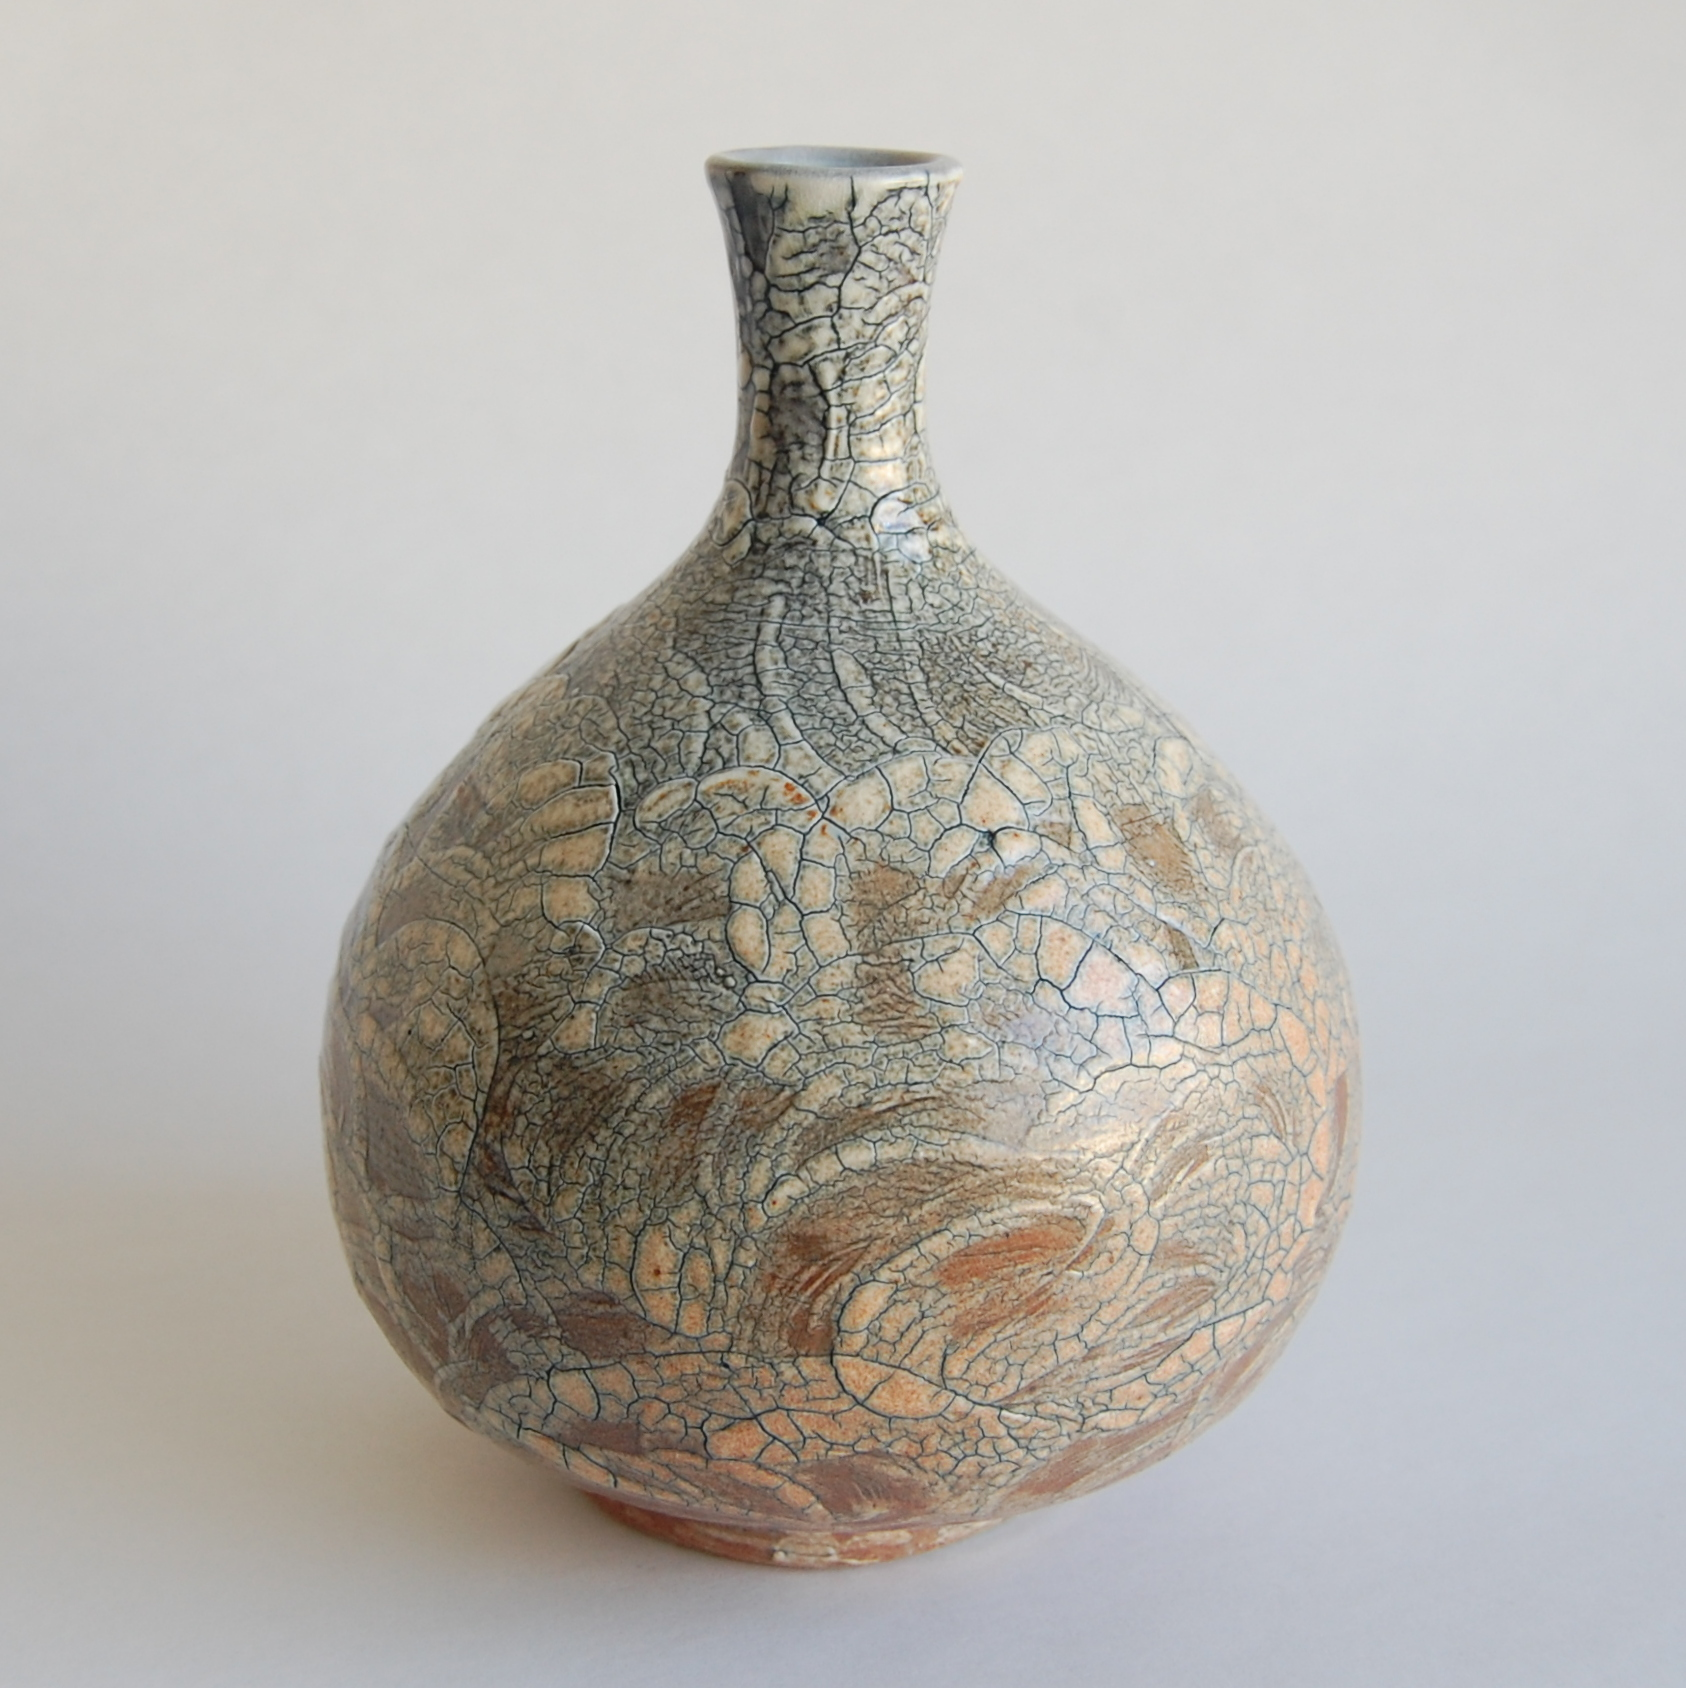 Wheel thrown ceramic bottle with swirled and crackled slip design, soda fired